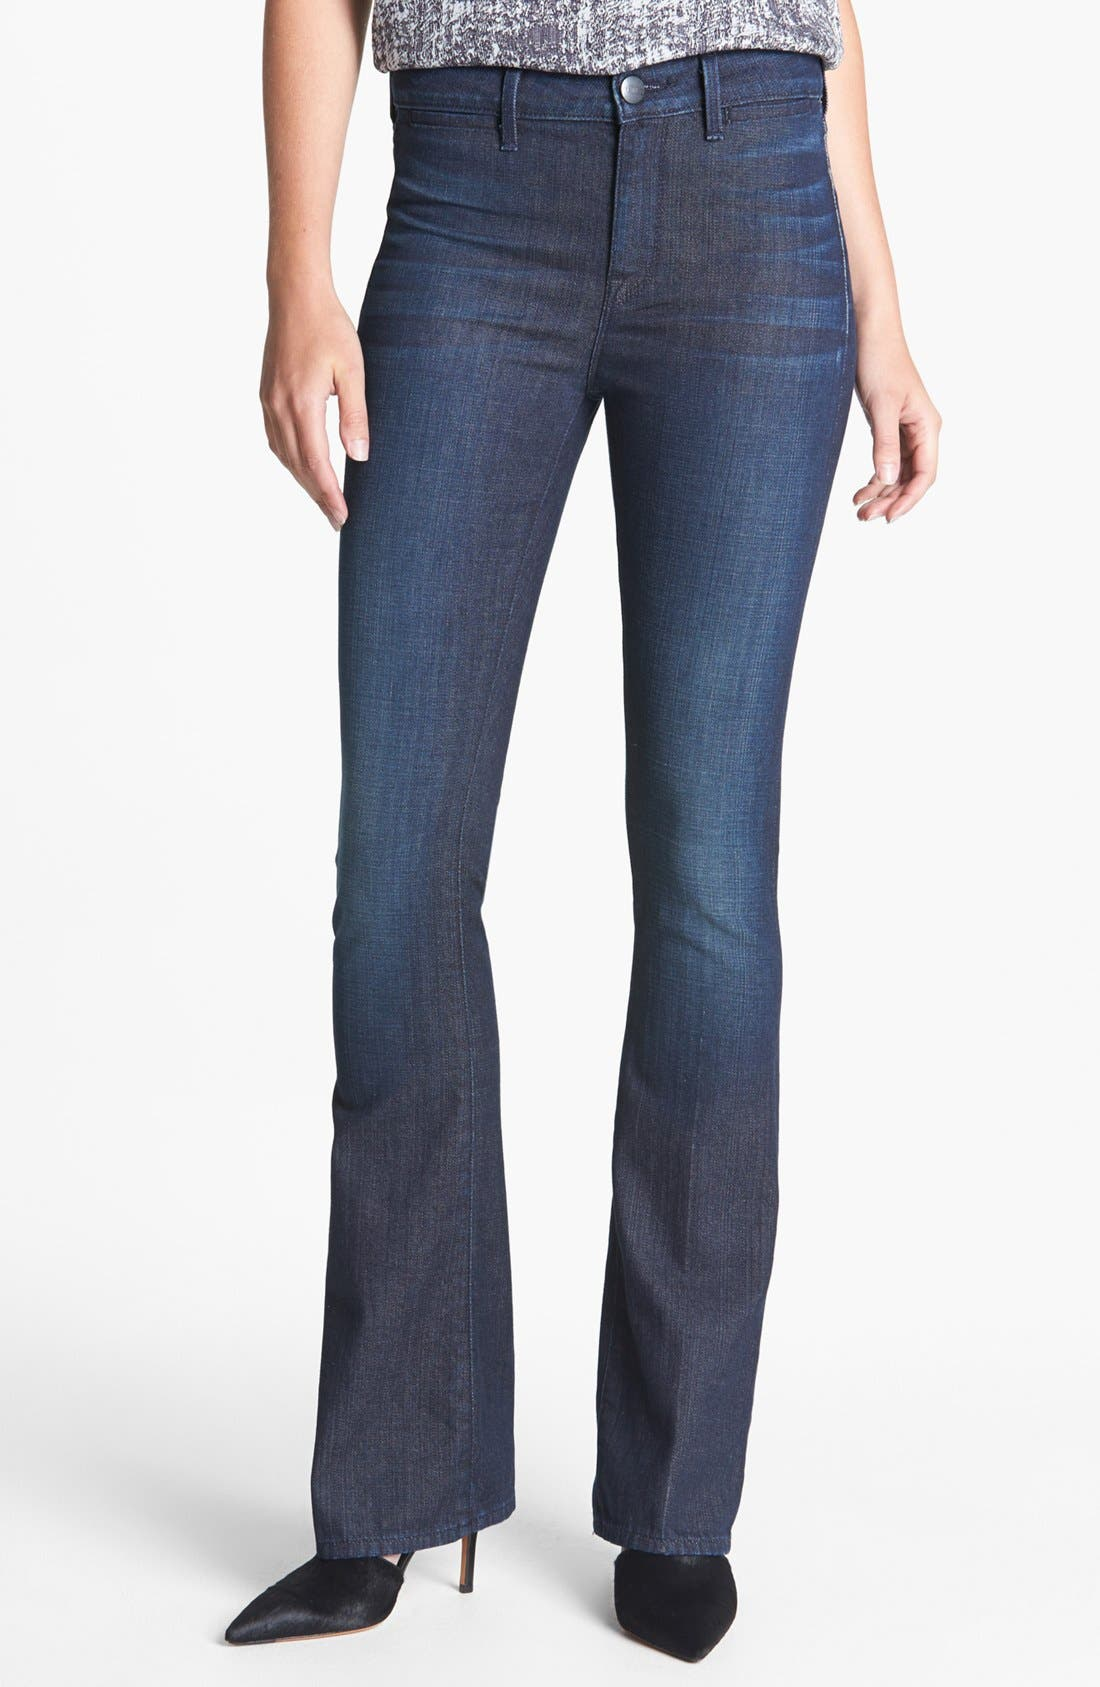 Main Image - Vince 'Taylor' High Rise Bootcut Stretch Jeans